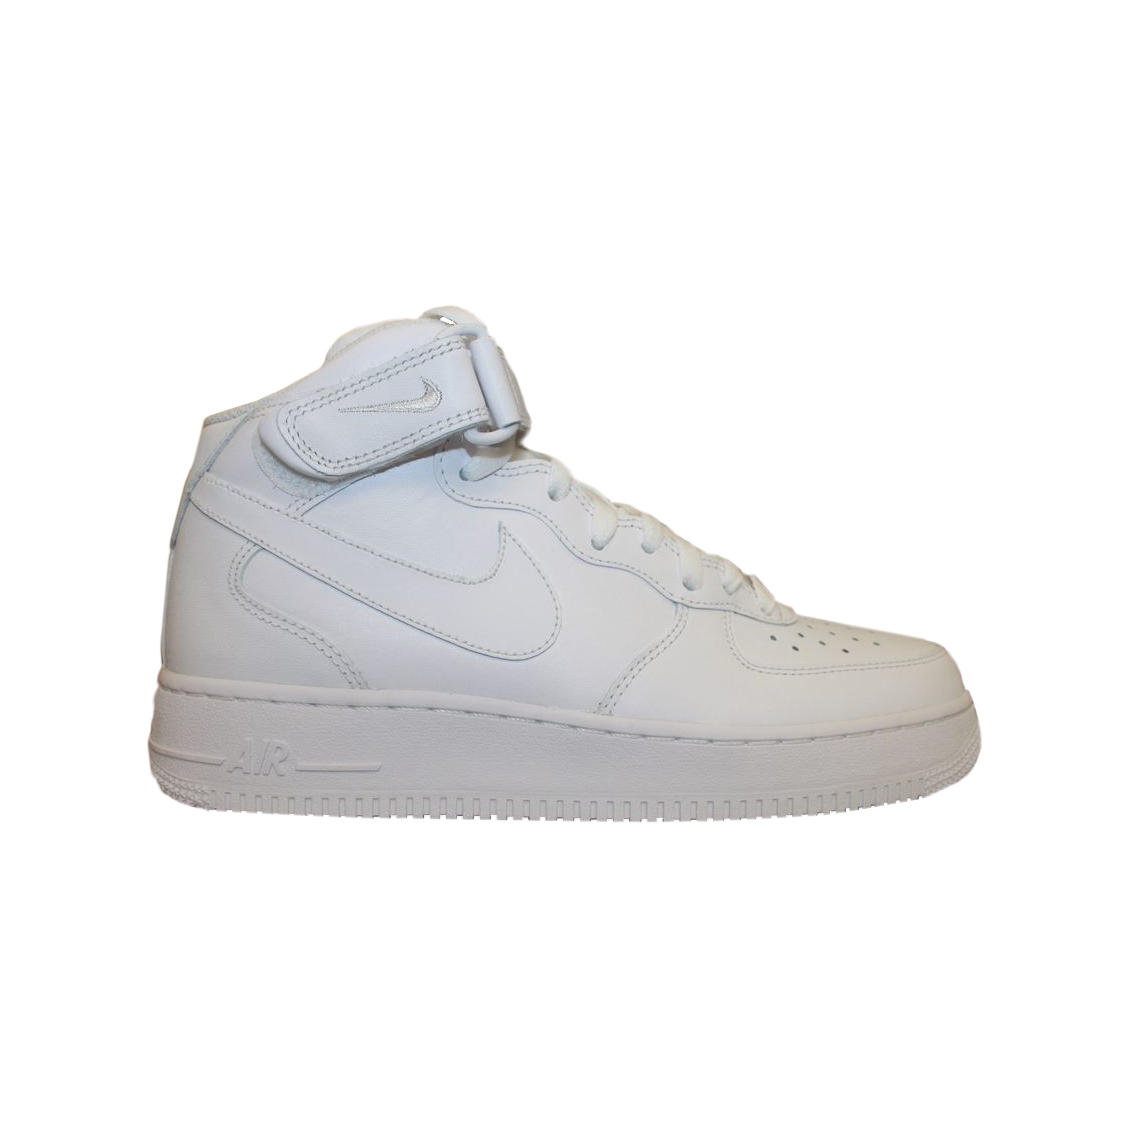 NIKE AIR FORCE 1 MID 07 Blanc 315123 111